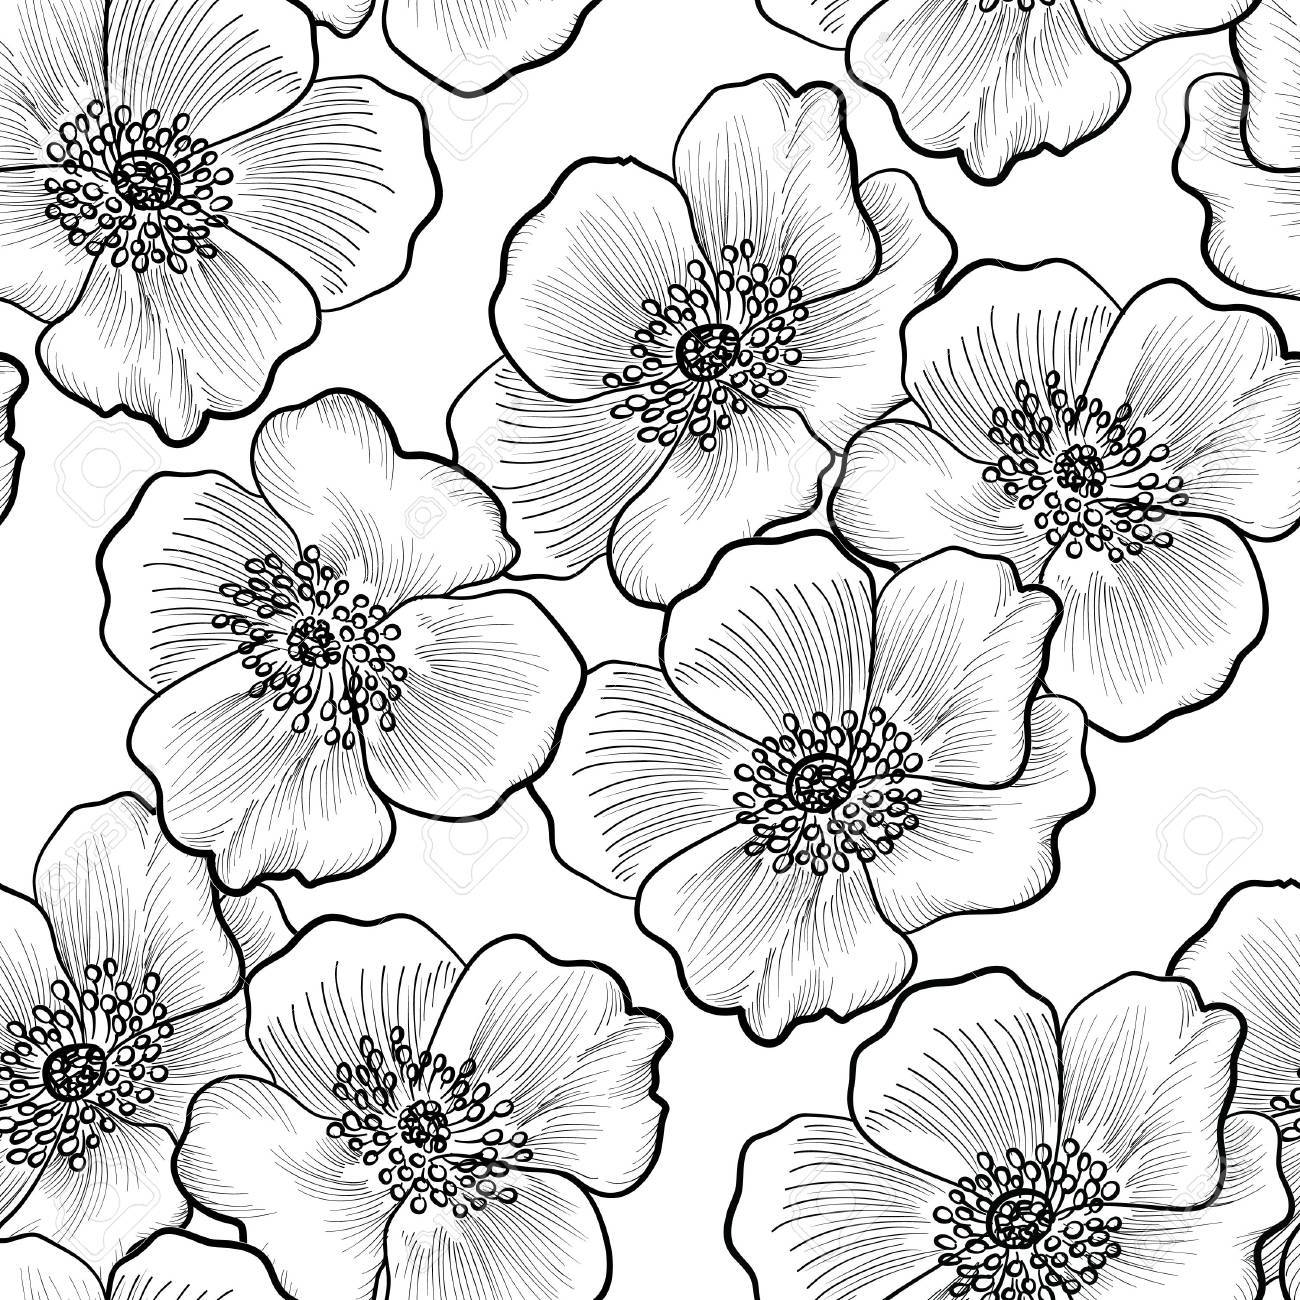 Floral seamless pattern flower background flourish sketch black floral seamless pattern flower background flourish sketch black and white texture with flowers daisy mightylinksfo